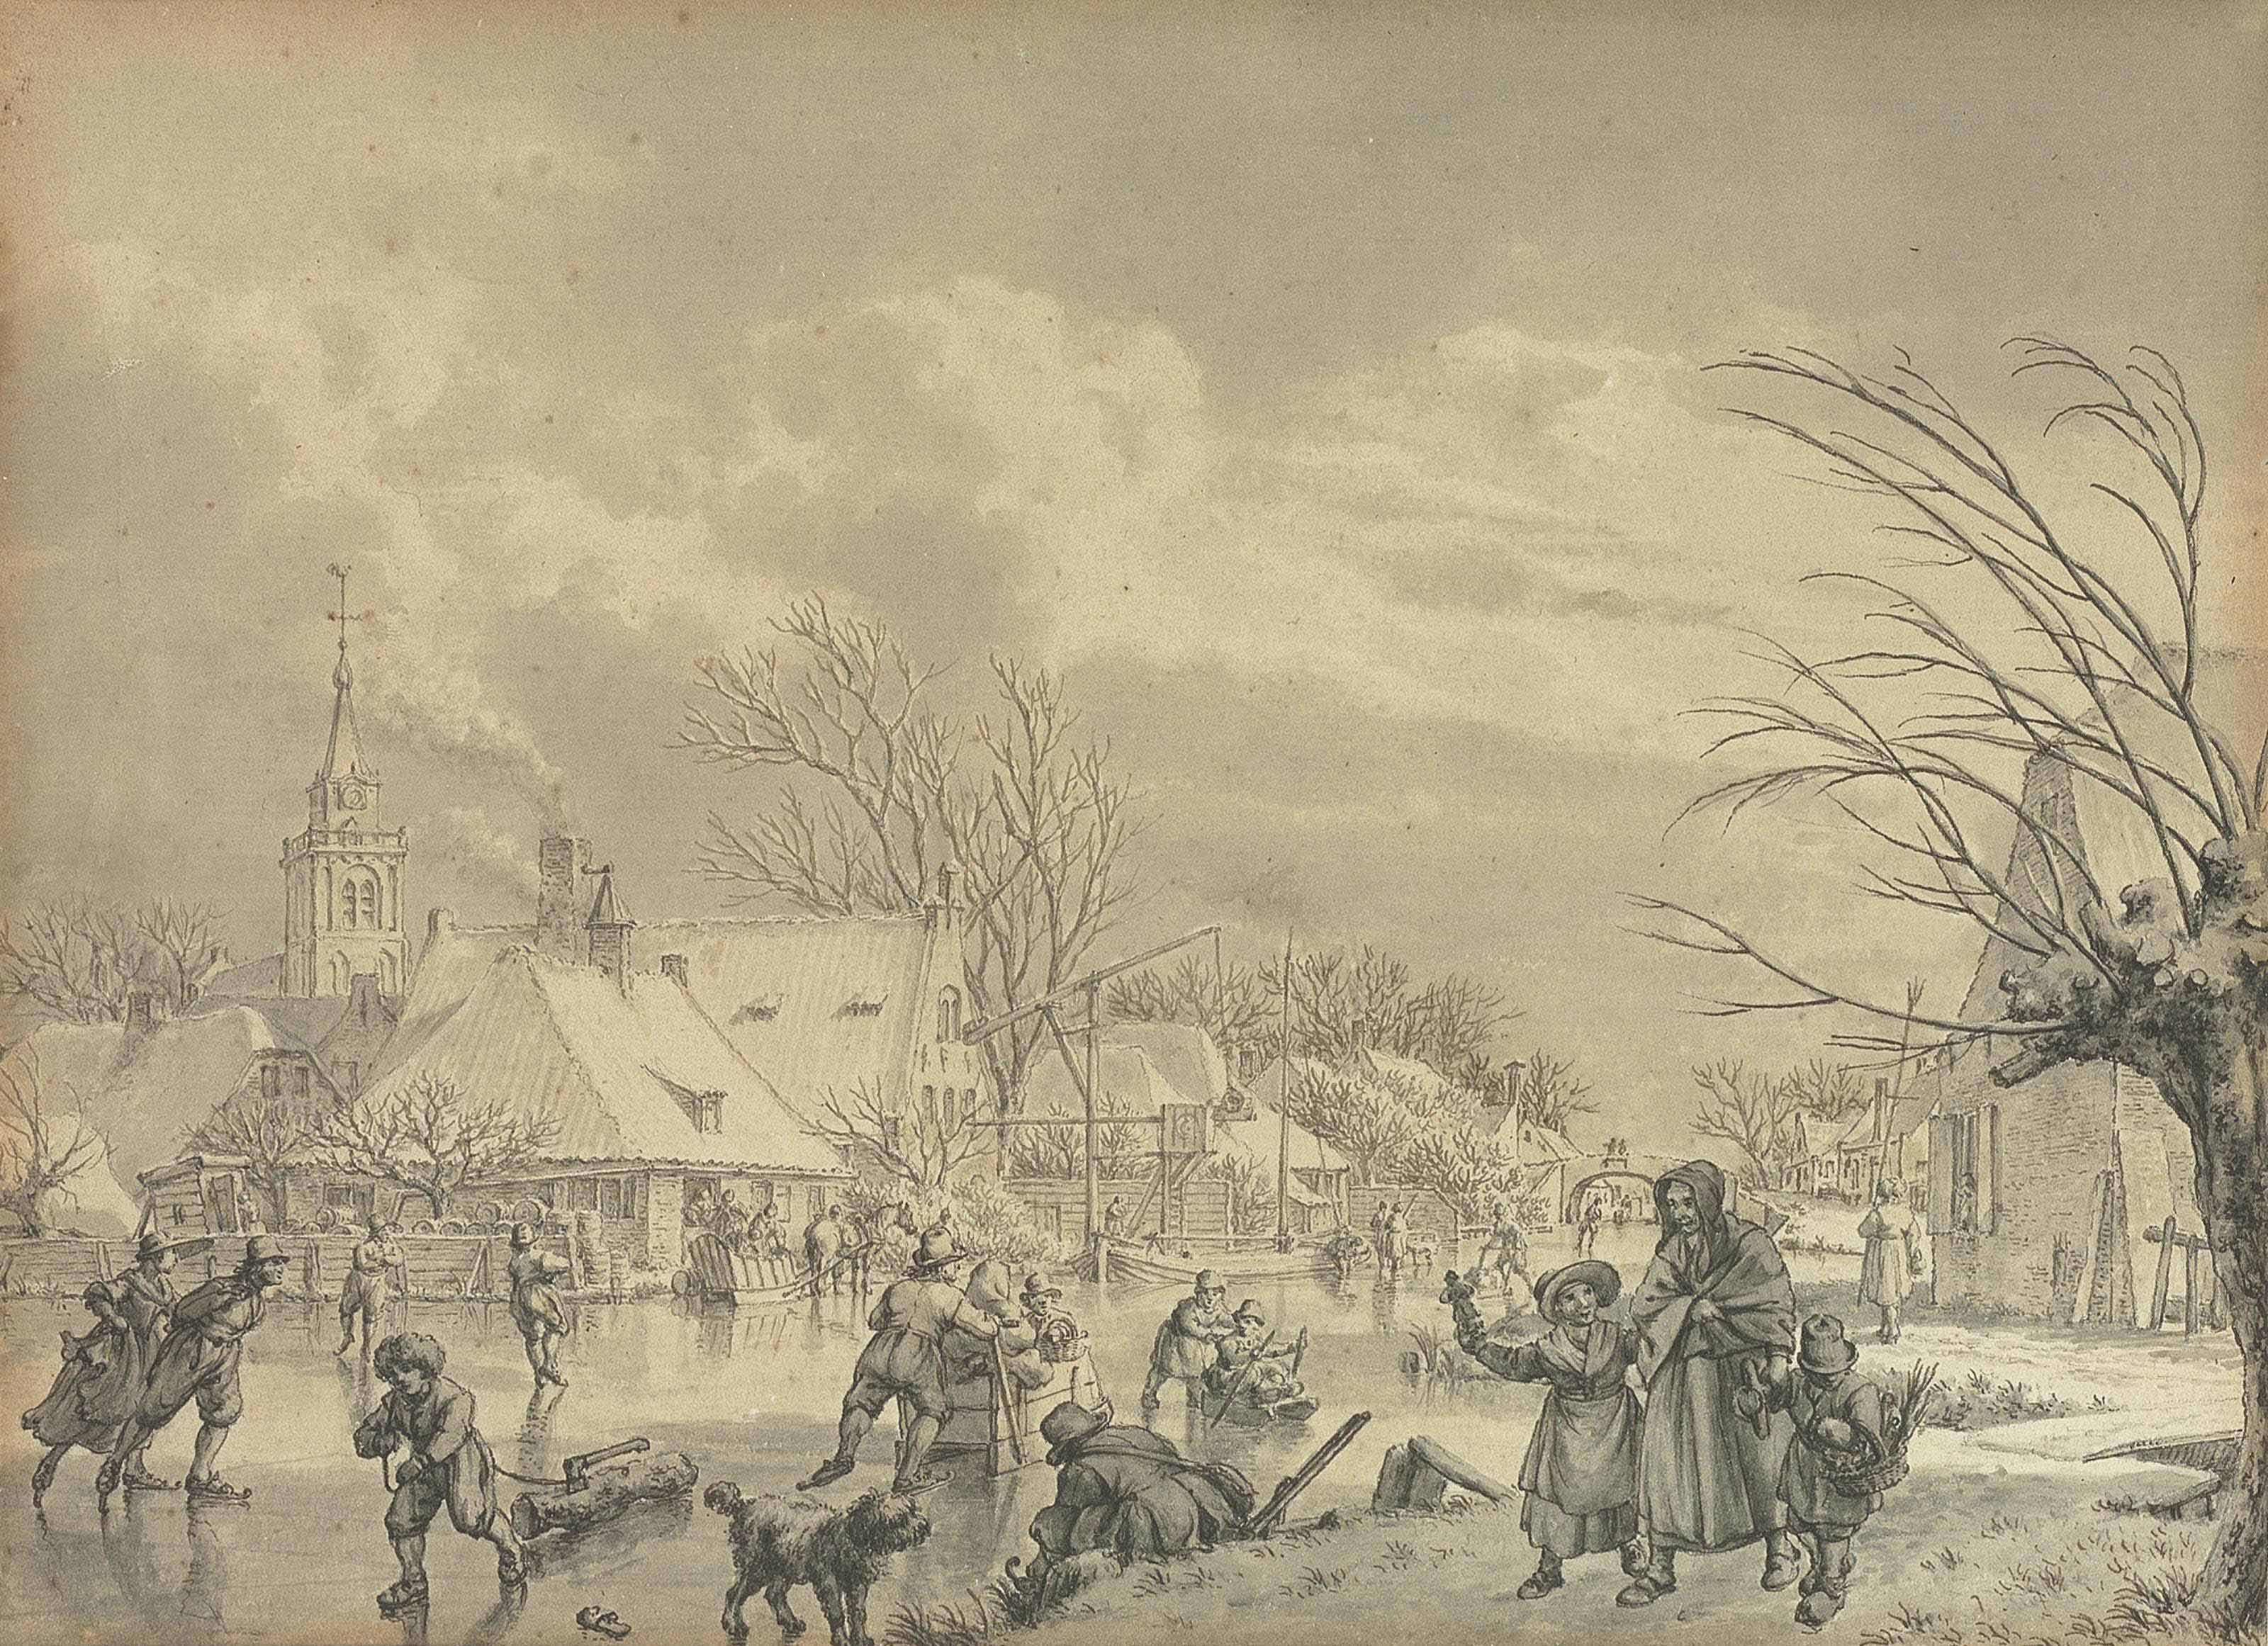 The month of December: skaters on a frozen river with a village beyond, possibly the village of Nieuwland near Leerdam